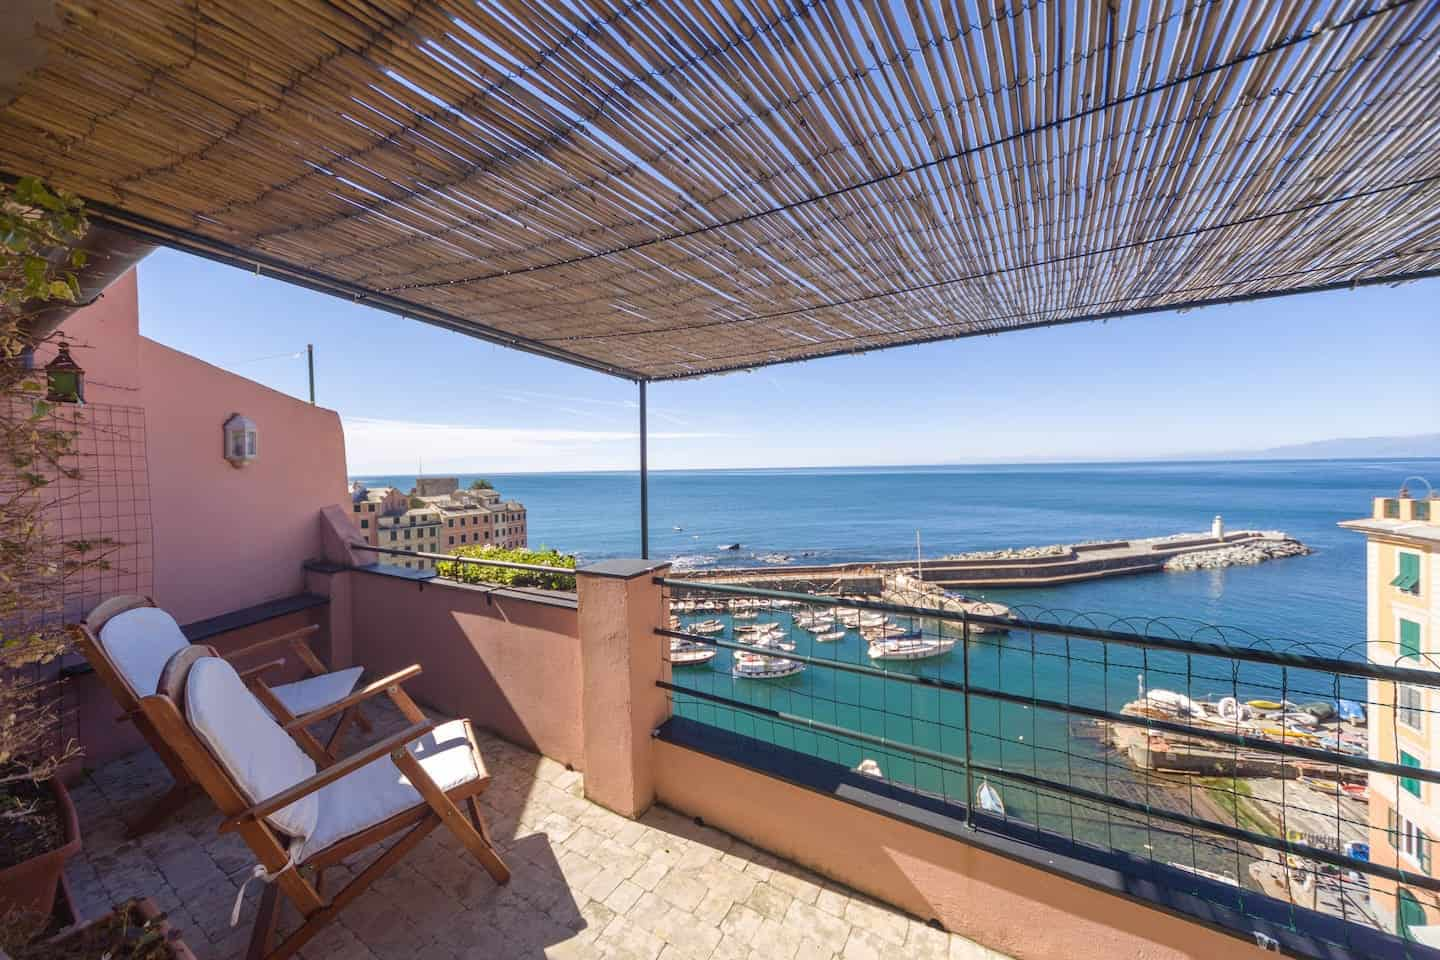 Image of Airbnb rental in Genoa, Italy